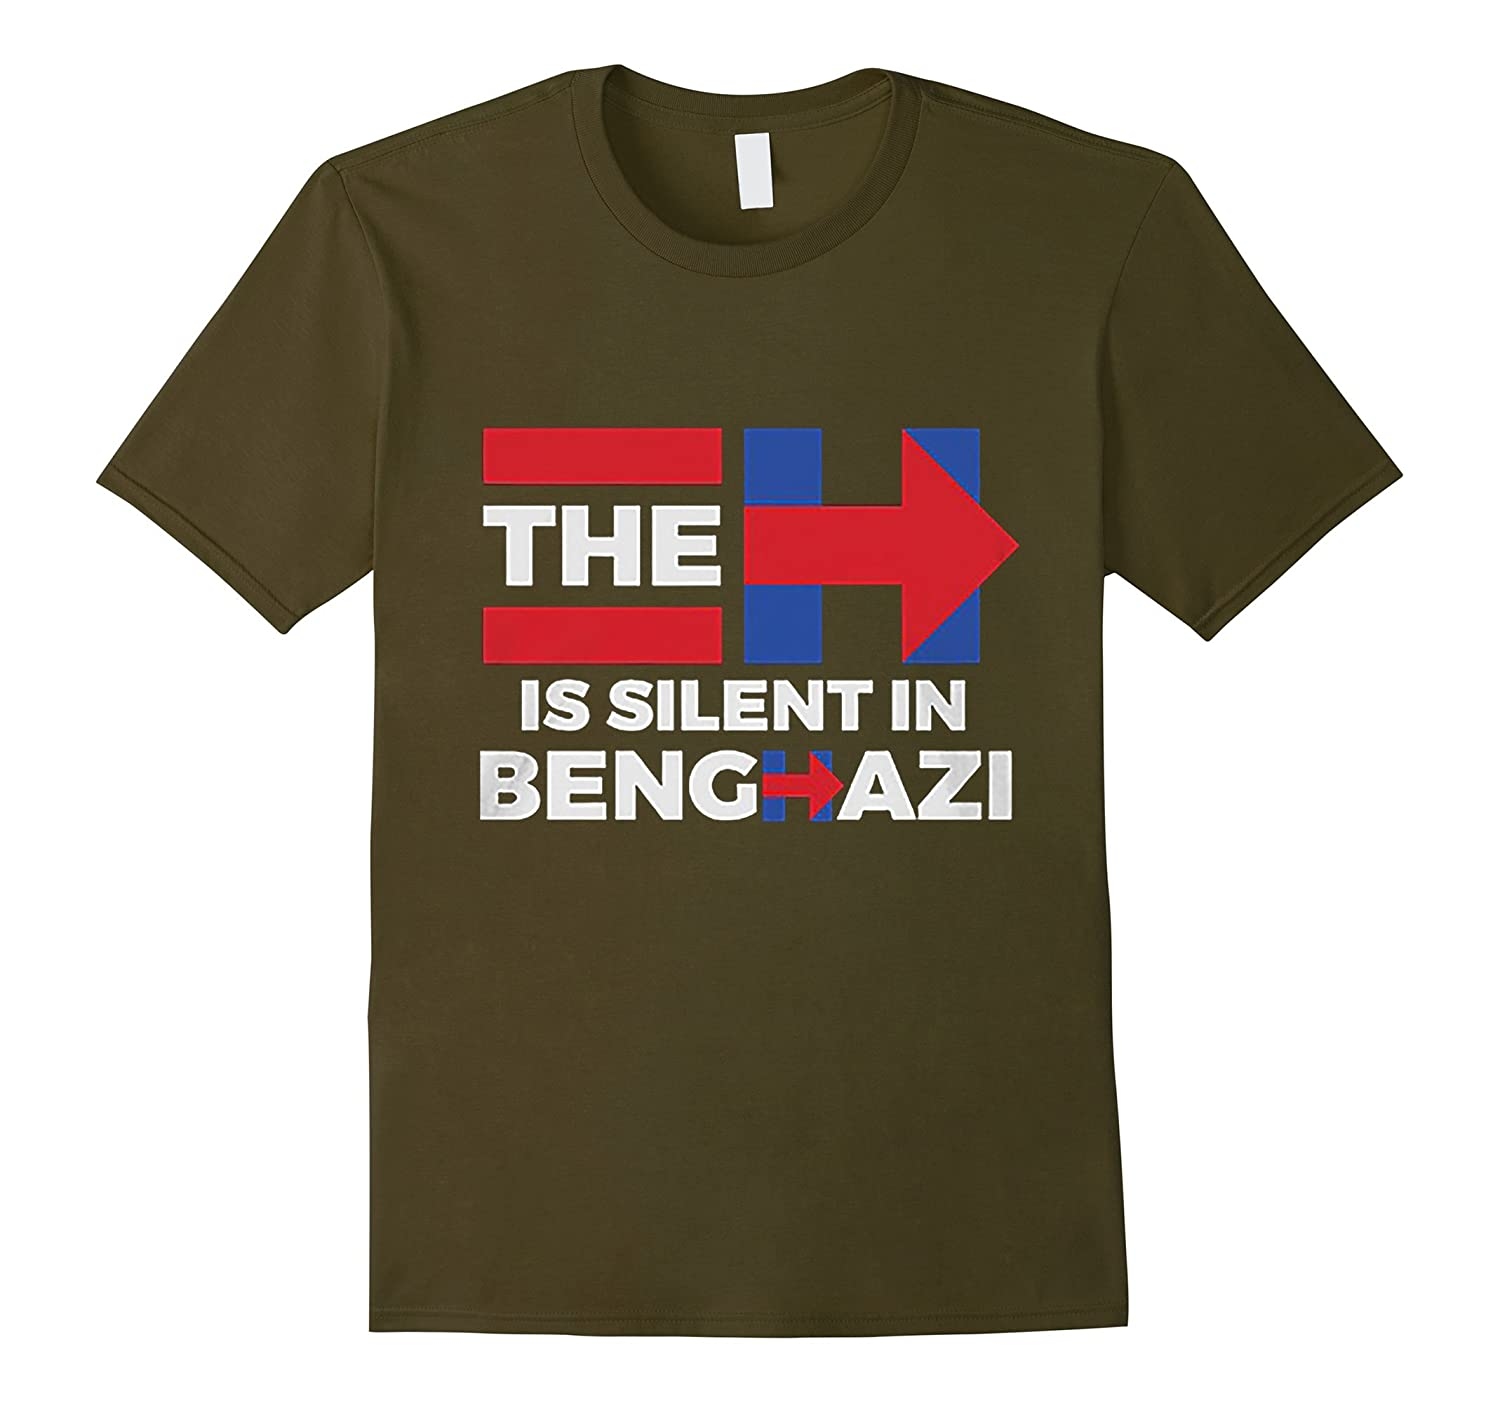 THE H IS SILENT IN BENGHAZI SHIRT